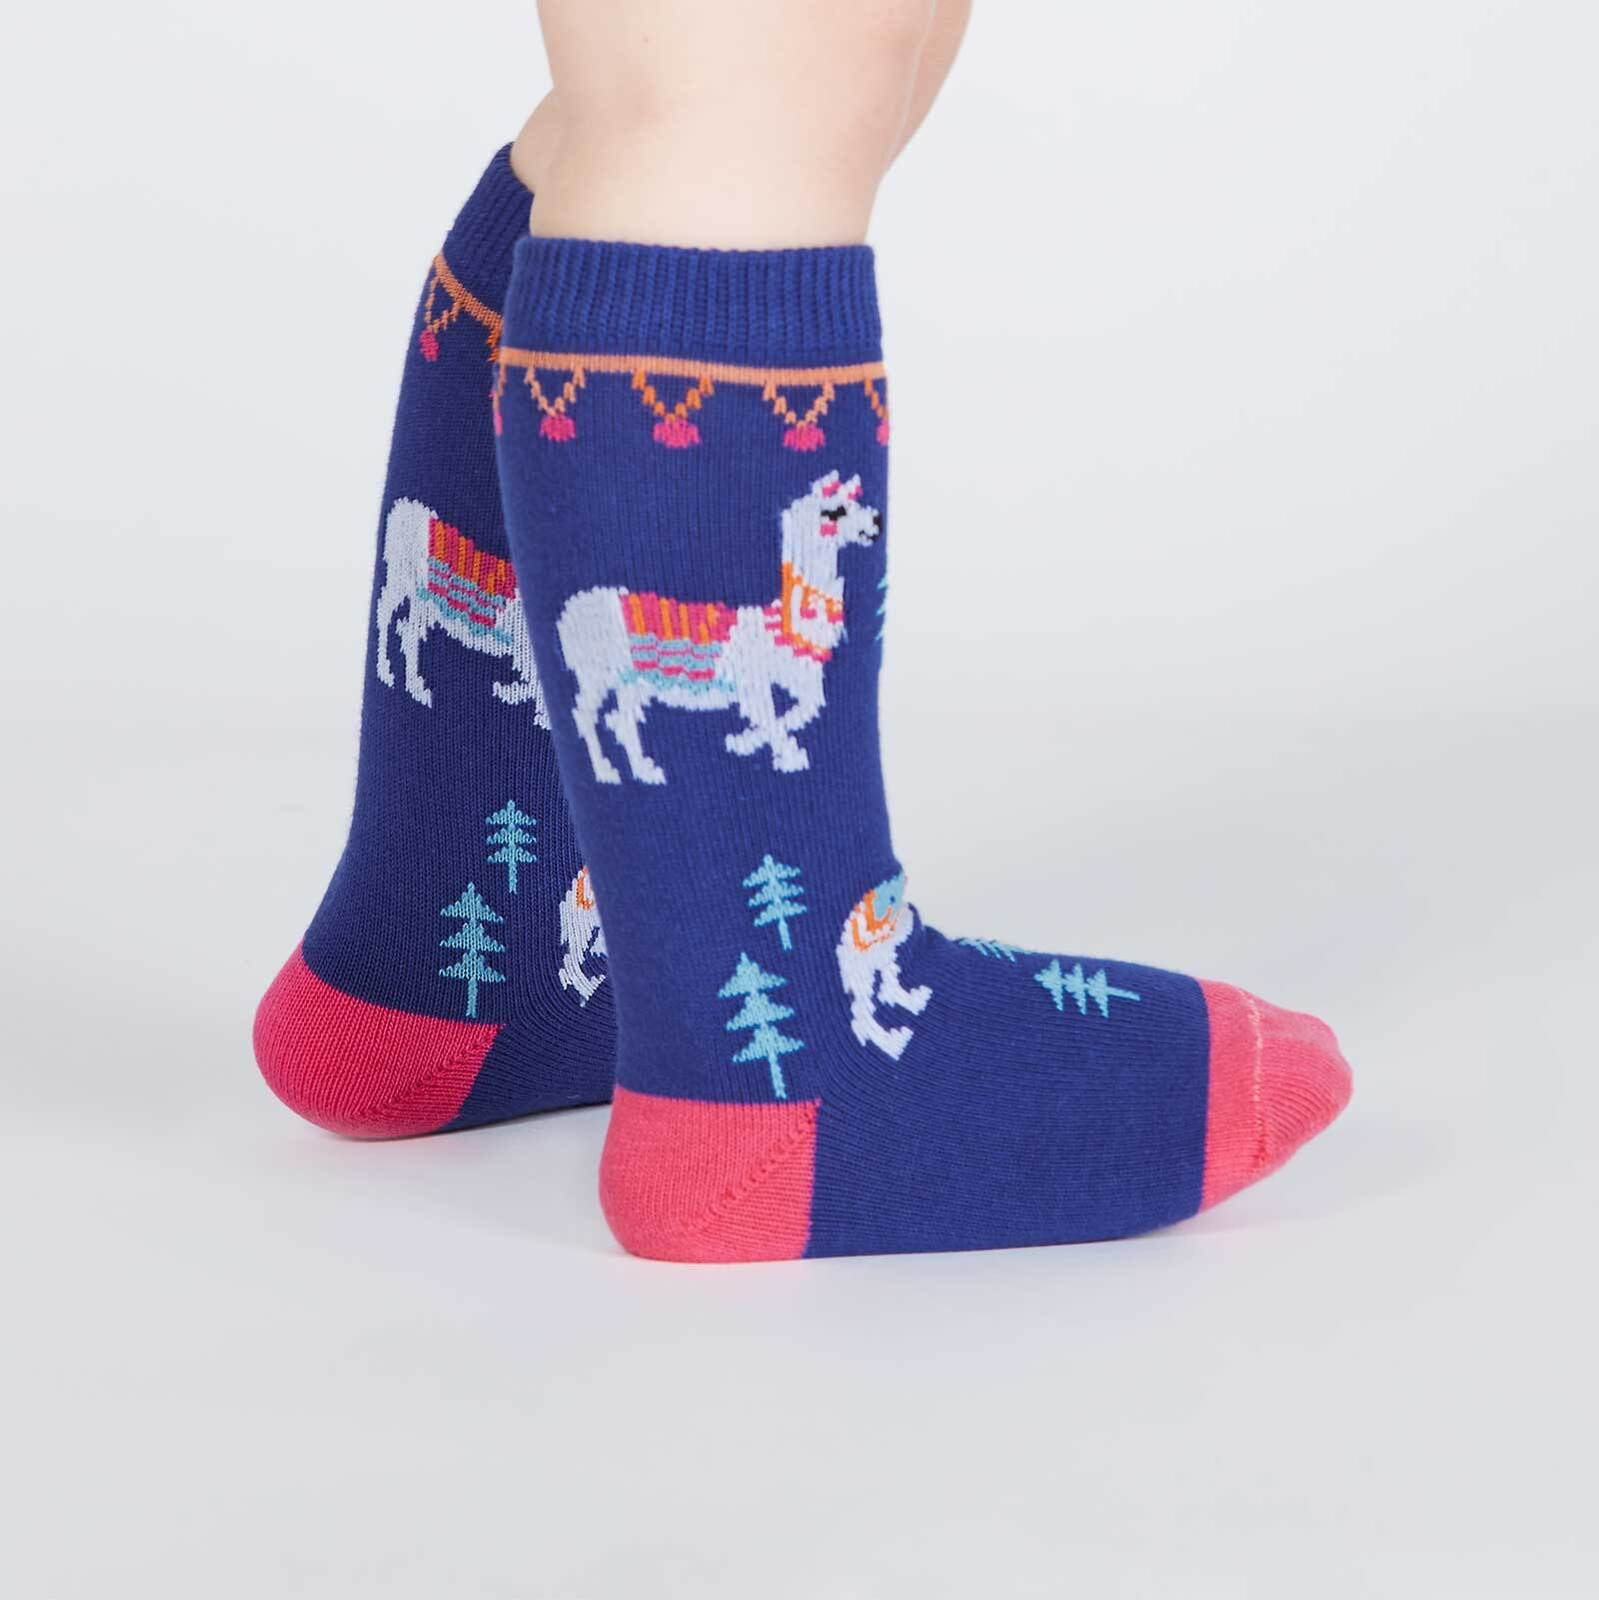 model side view of ¿Cómo te Llamas? - Llama Knee High Socks - Toddler's